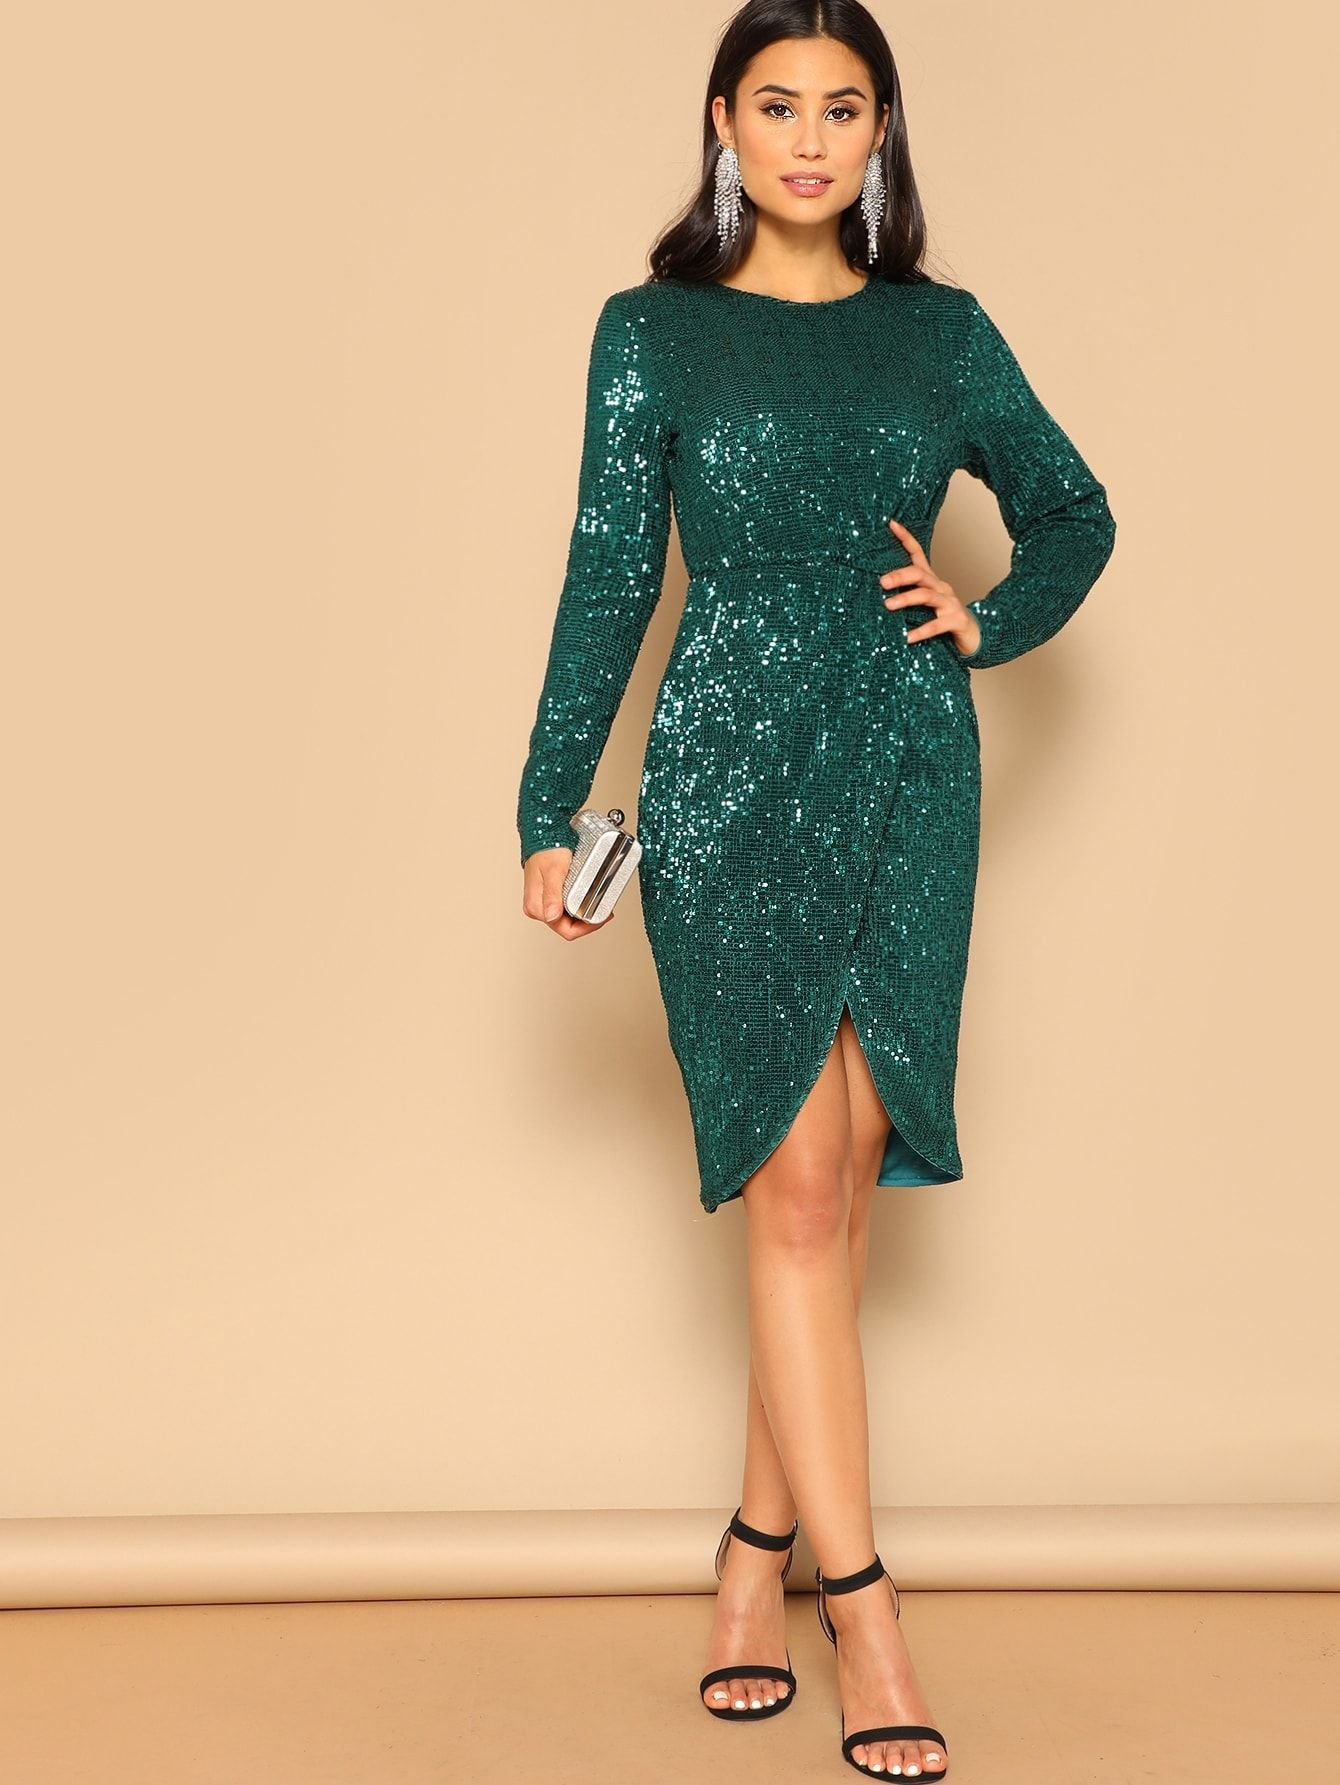 21569c69dee80 Party Sequins Plain Bodycon Round Neck Long Sleeve Regular Sleeve High  Waist Green Knee Length Twist Waist Tulip Hem Sequin Dress